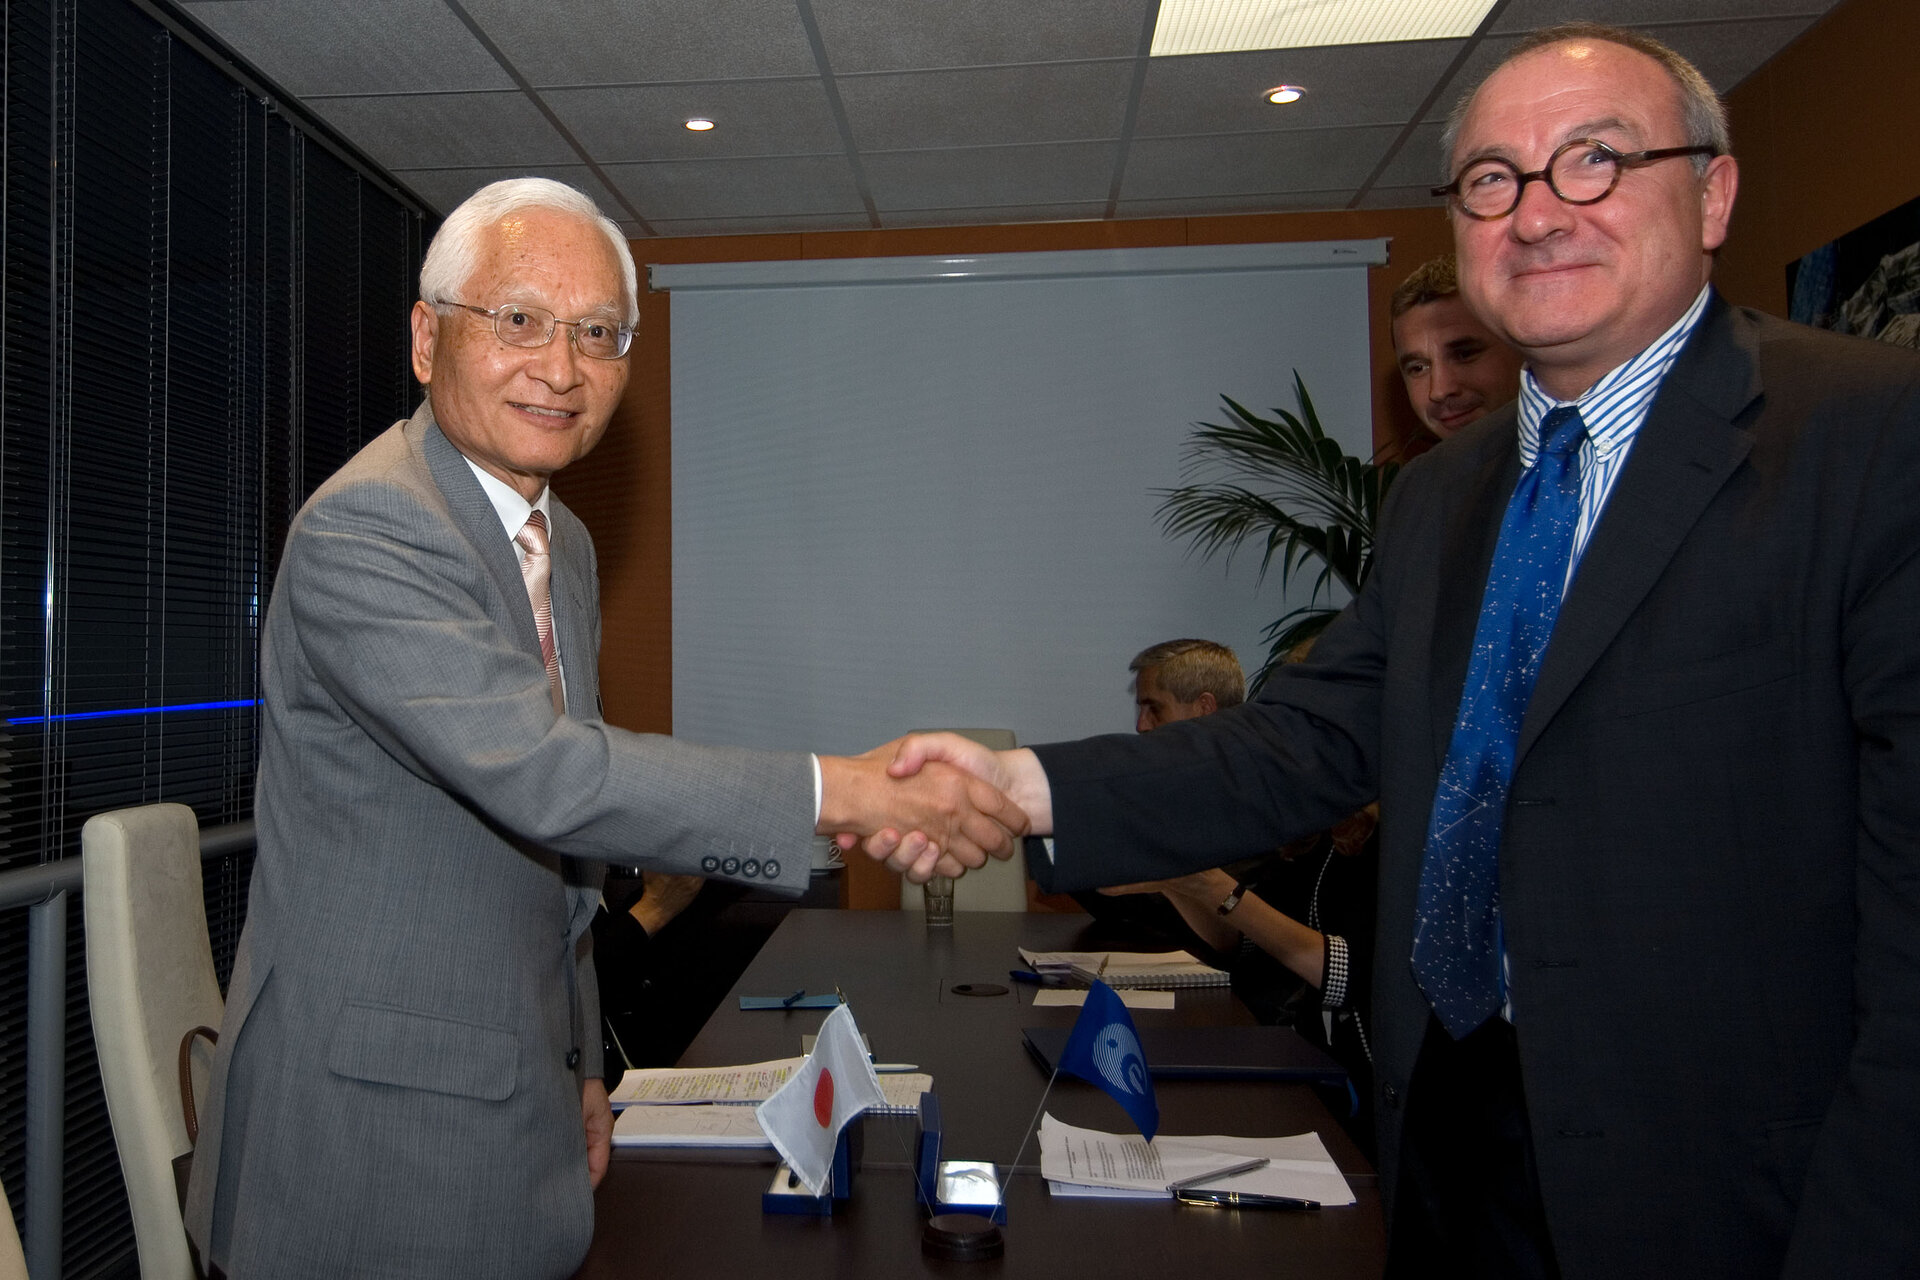 Signature of an agreement on Space Components between Mr Keiji Tachikawa and Mr Jean-Jacques Dordain